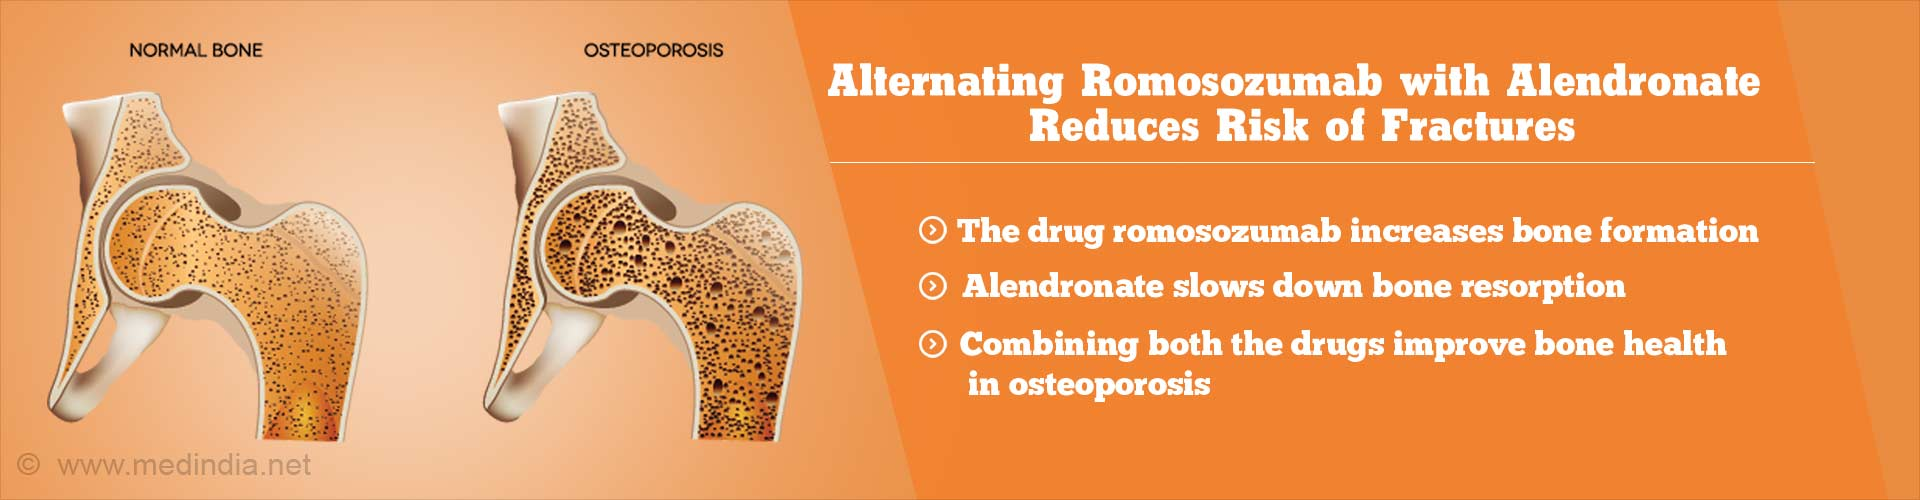 Fractures In Osteoporosis Patients Can Be Reduced With This Drug